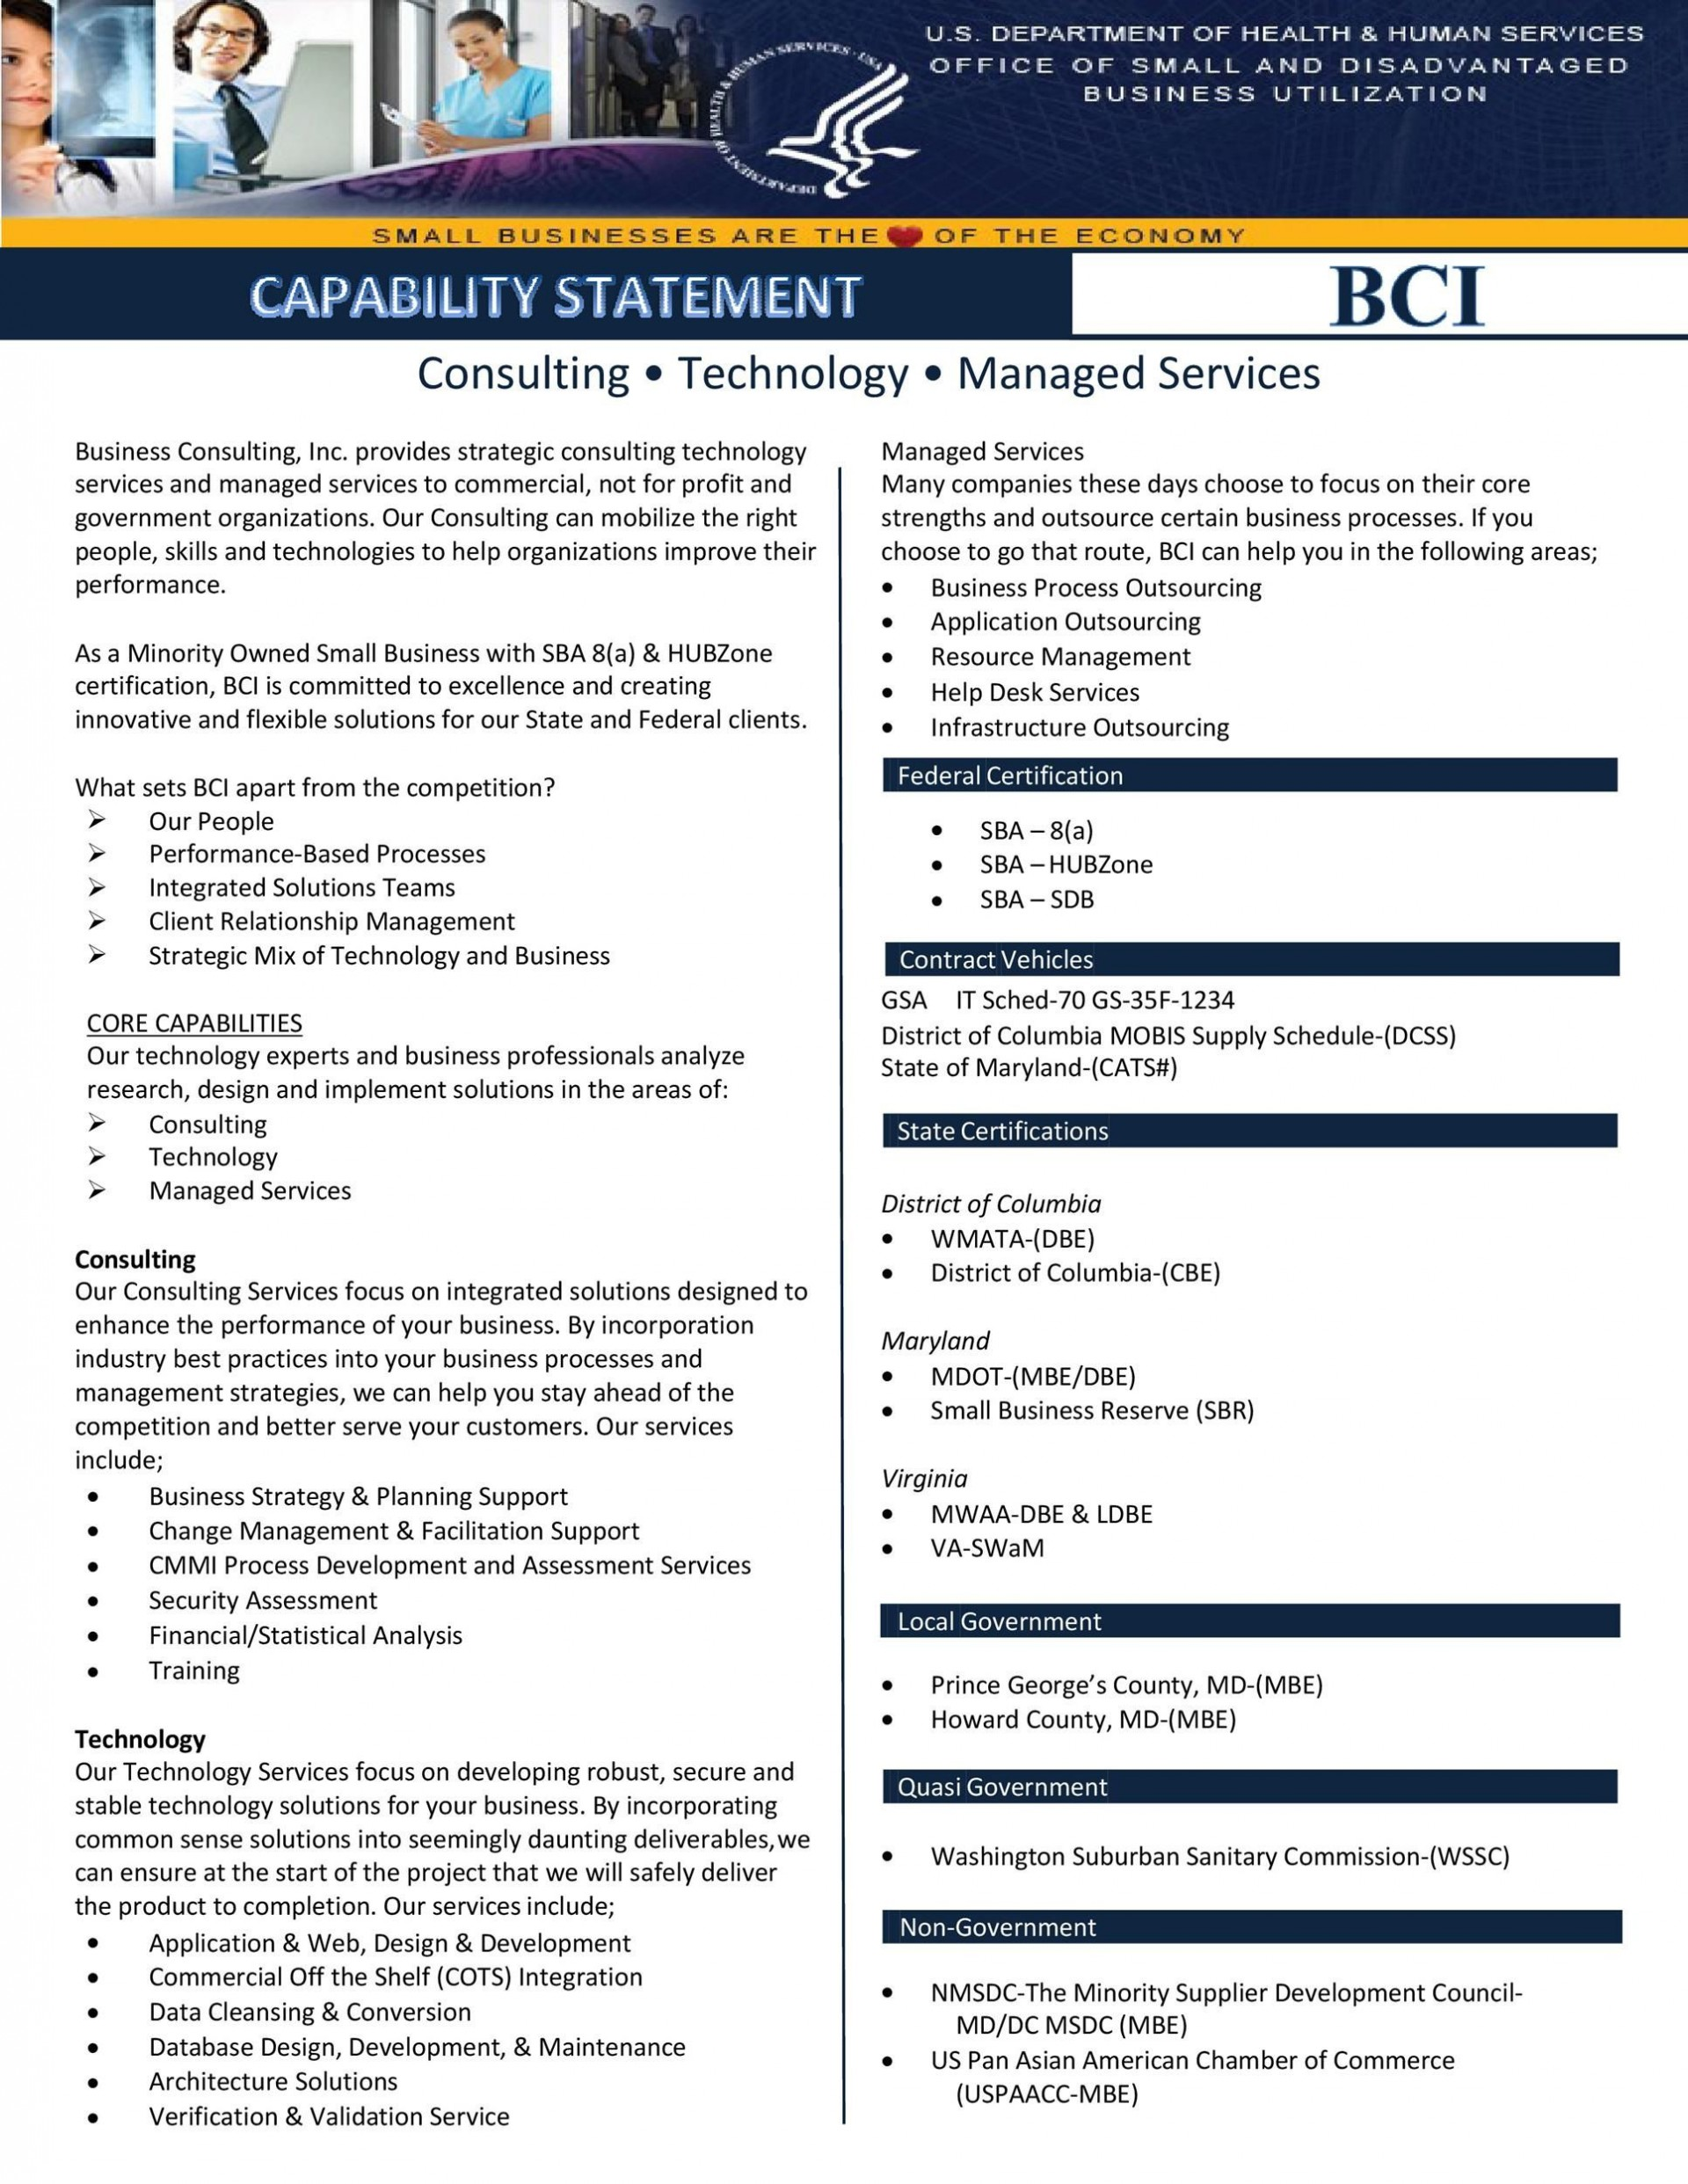 006 Archaicawful Capability Statement Template Free Sample  Word Editable Design1920